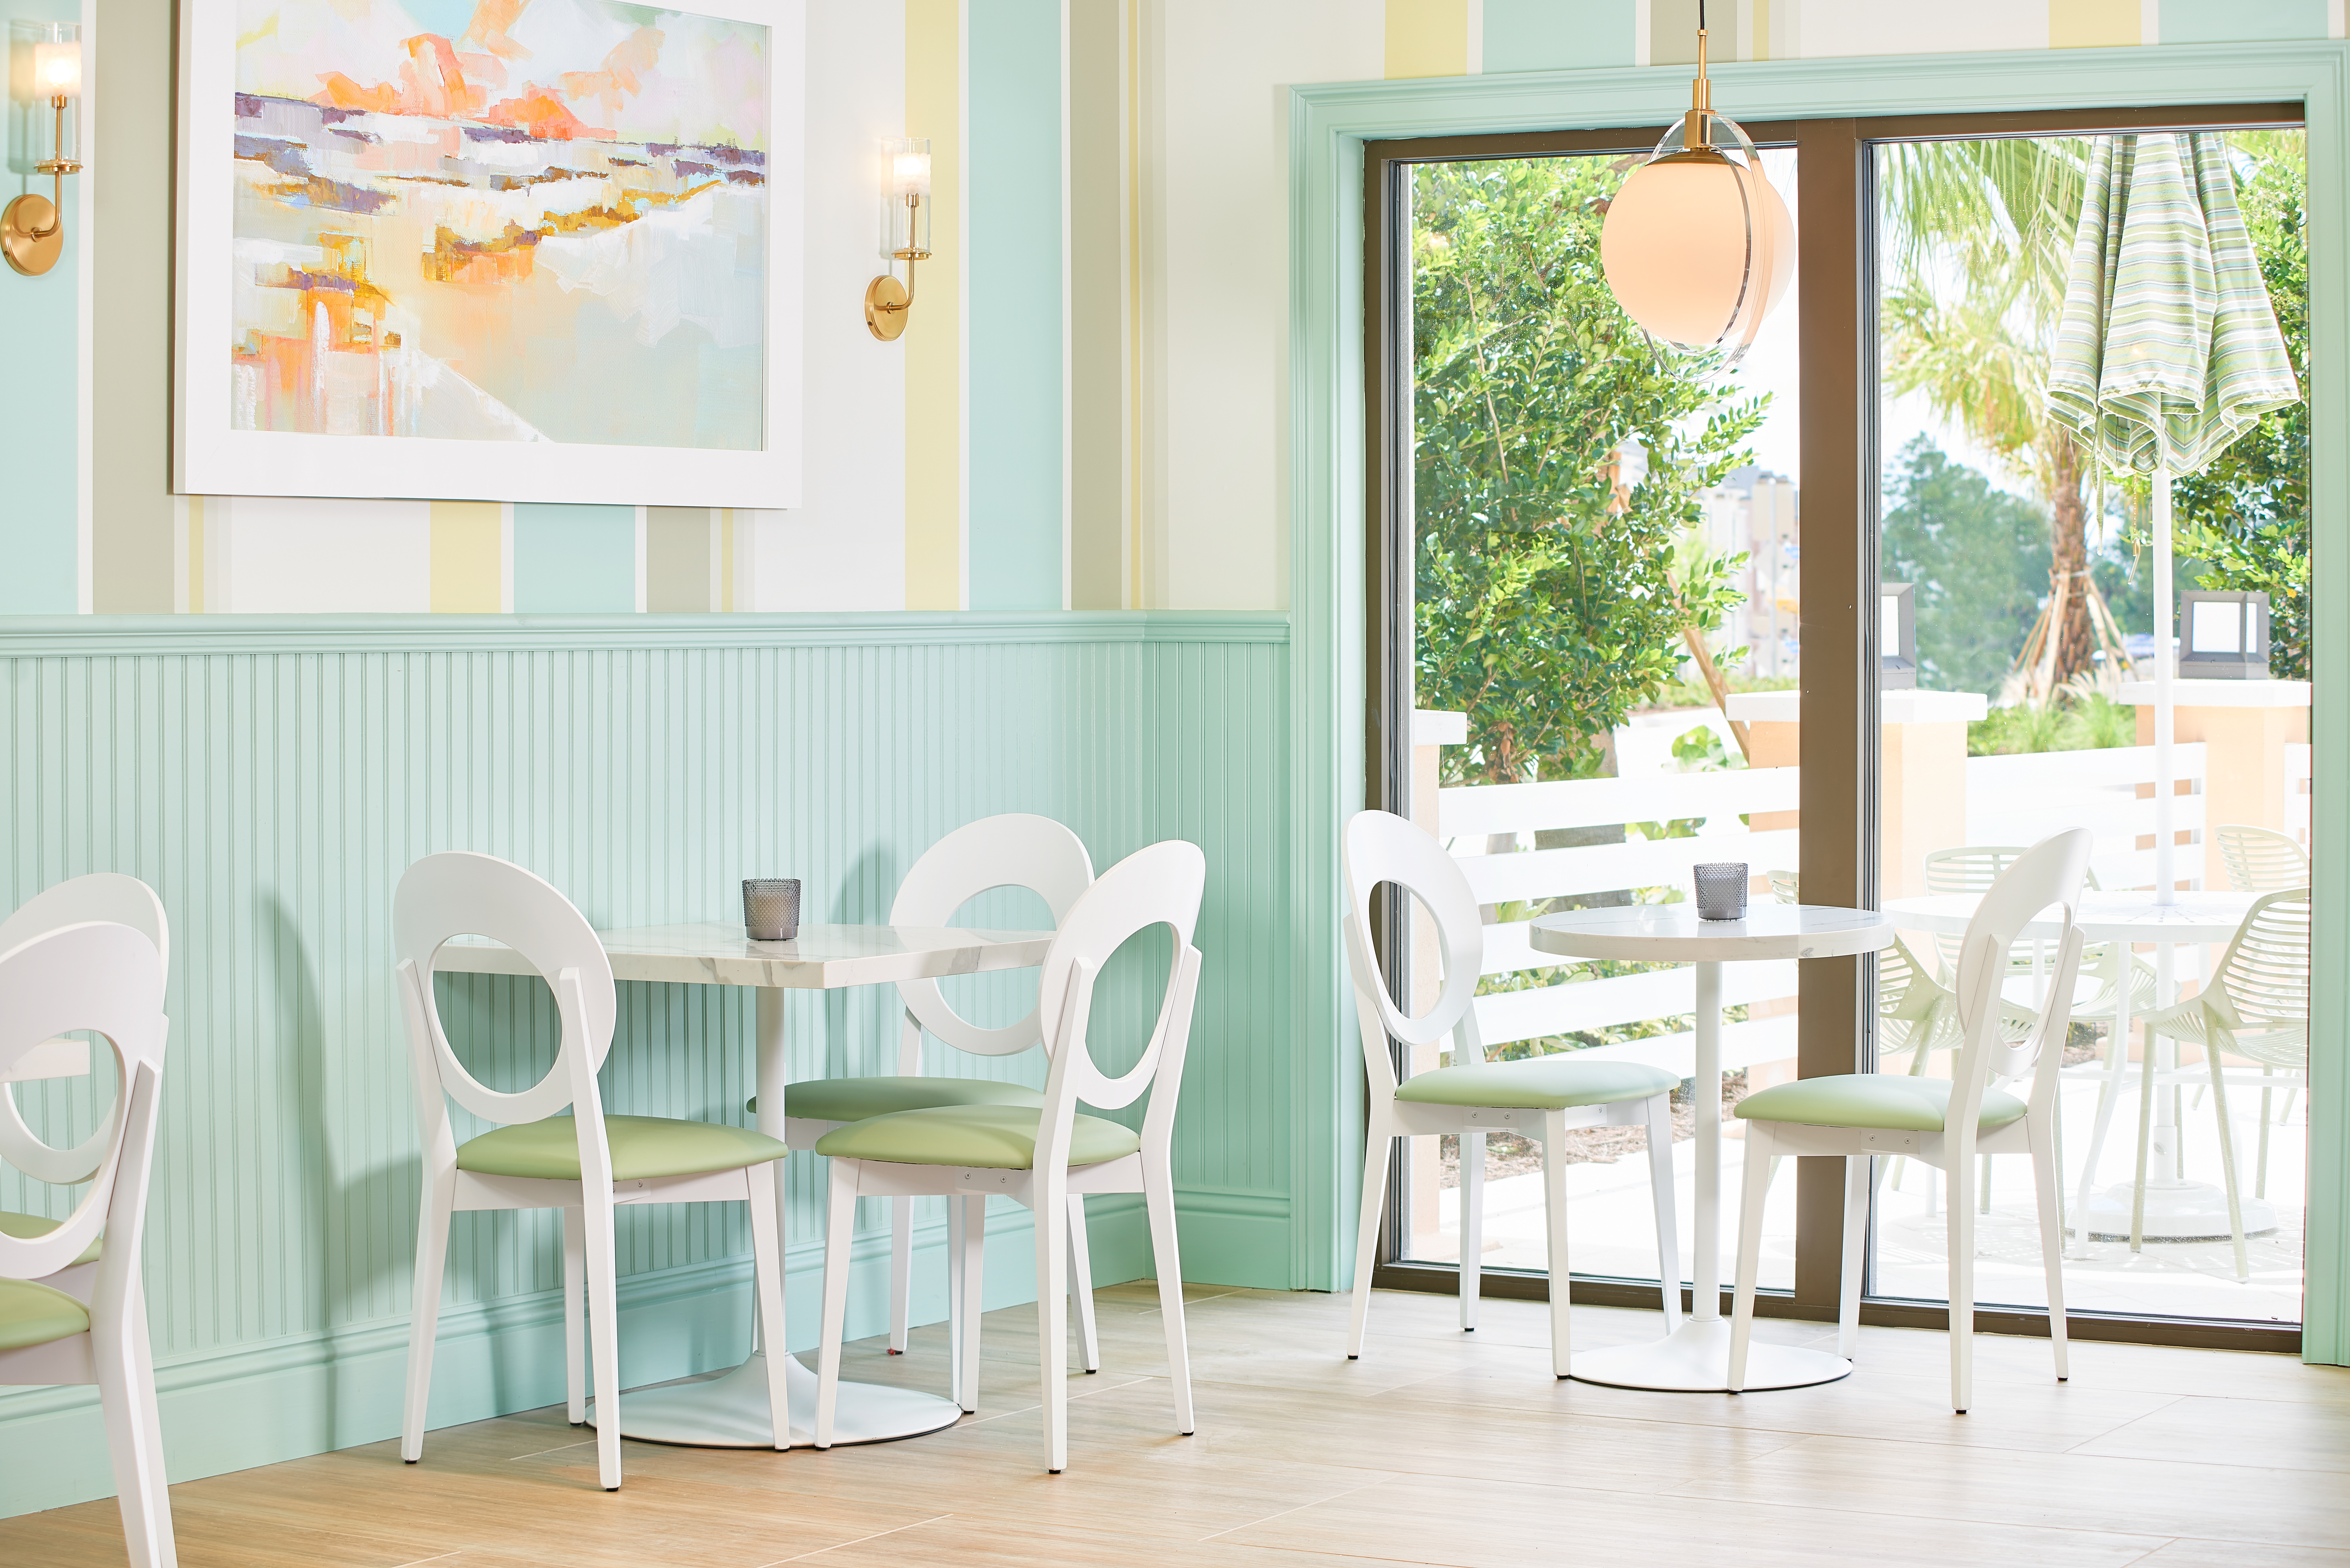 ORL_SR_Clubhouse_Cafe_01